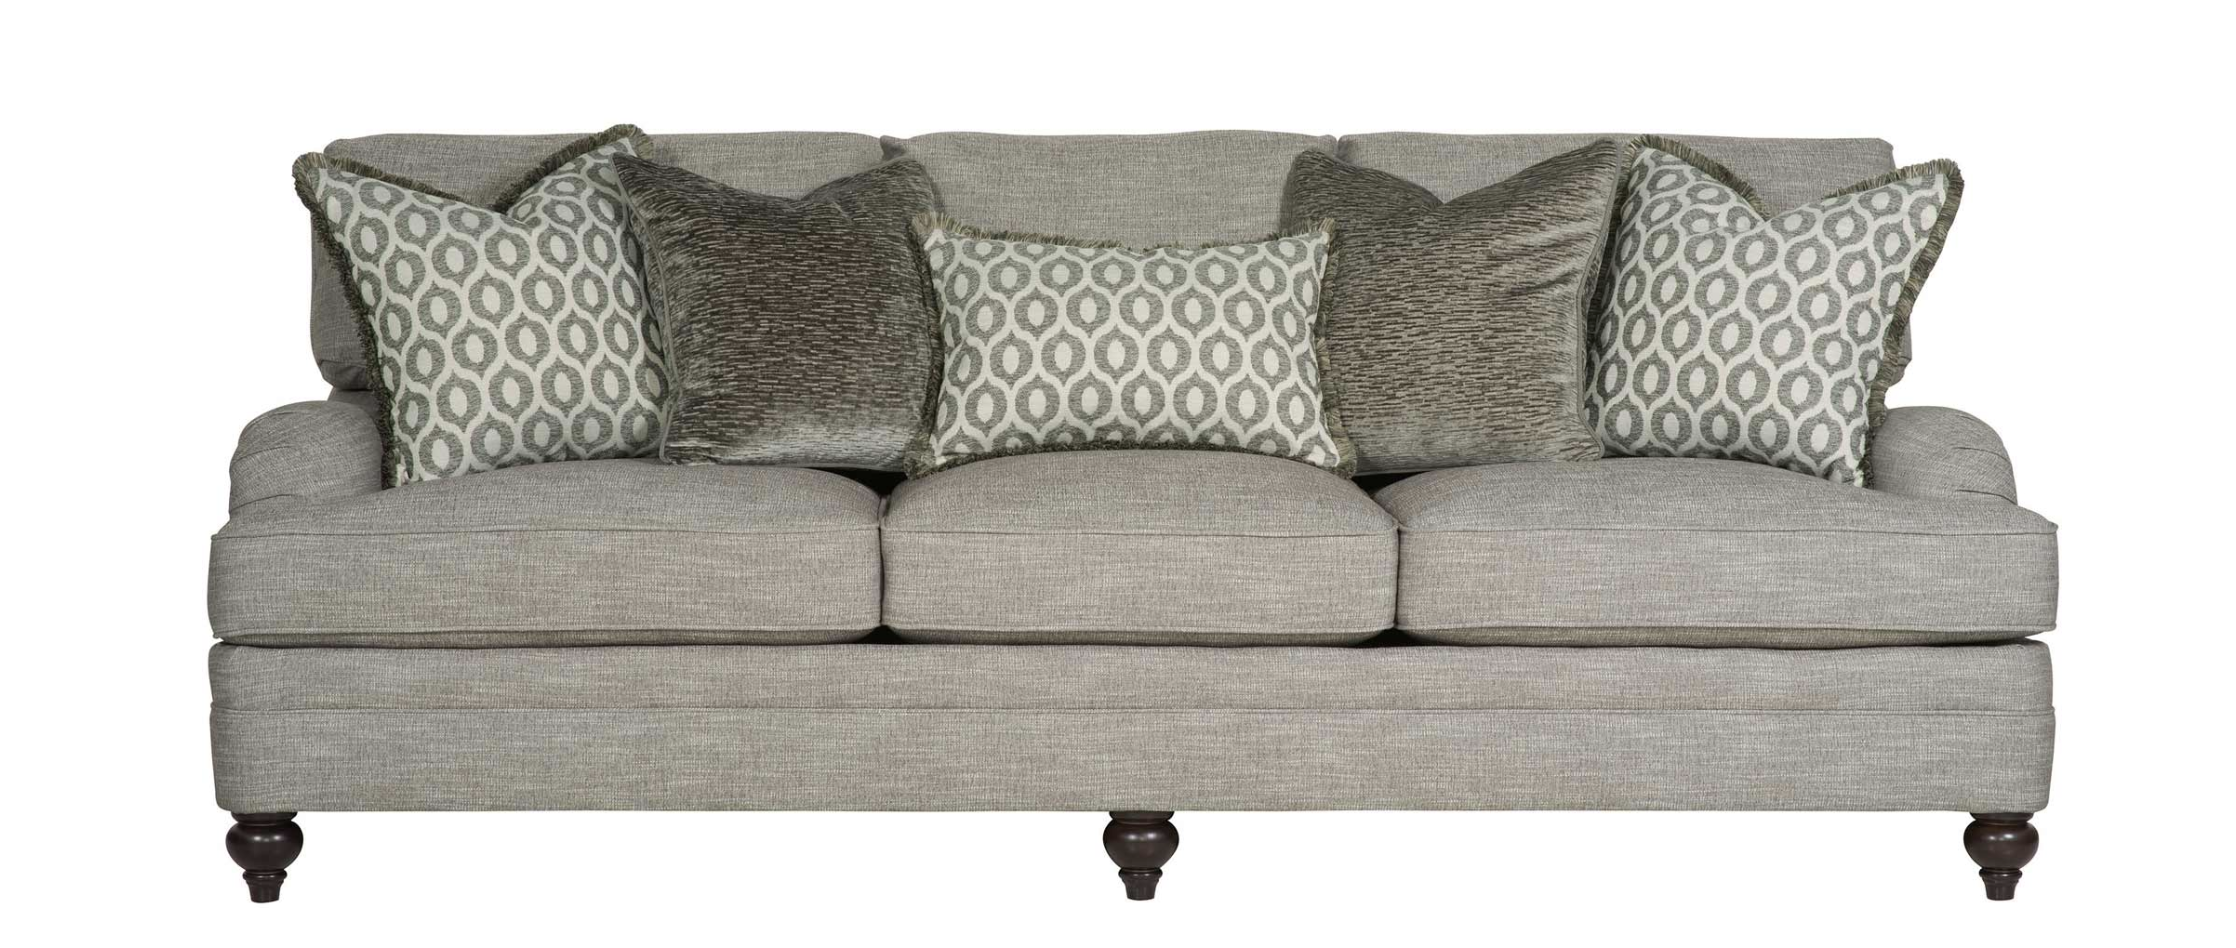 grey luxury couch from bernhardt with patterned throw pillows